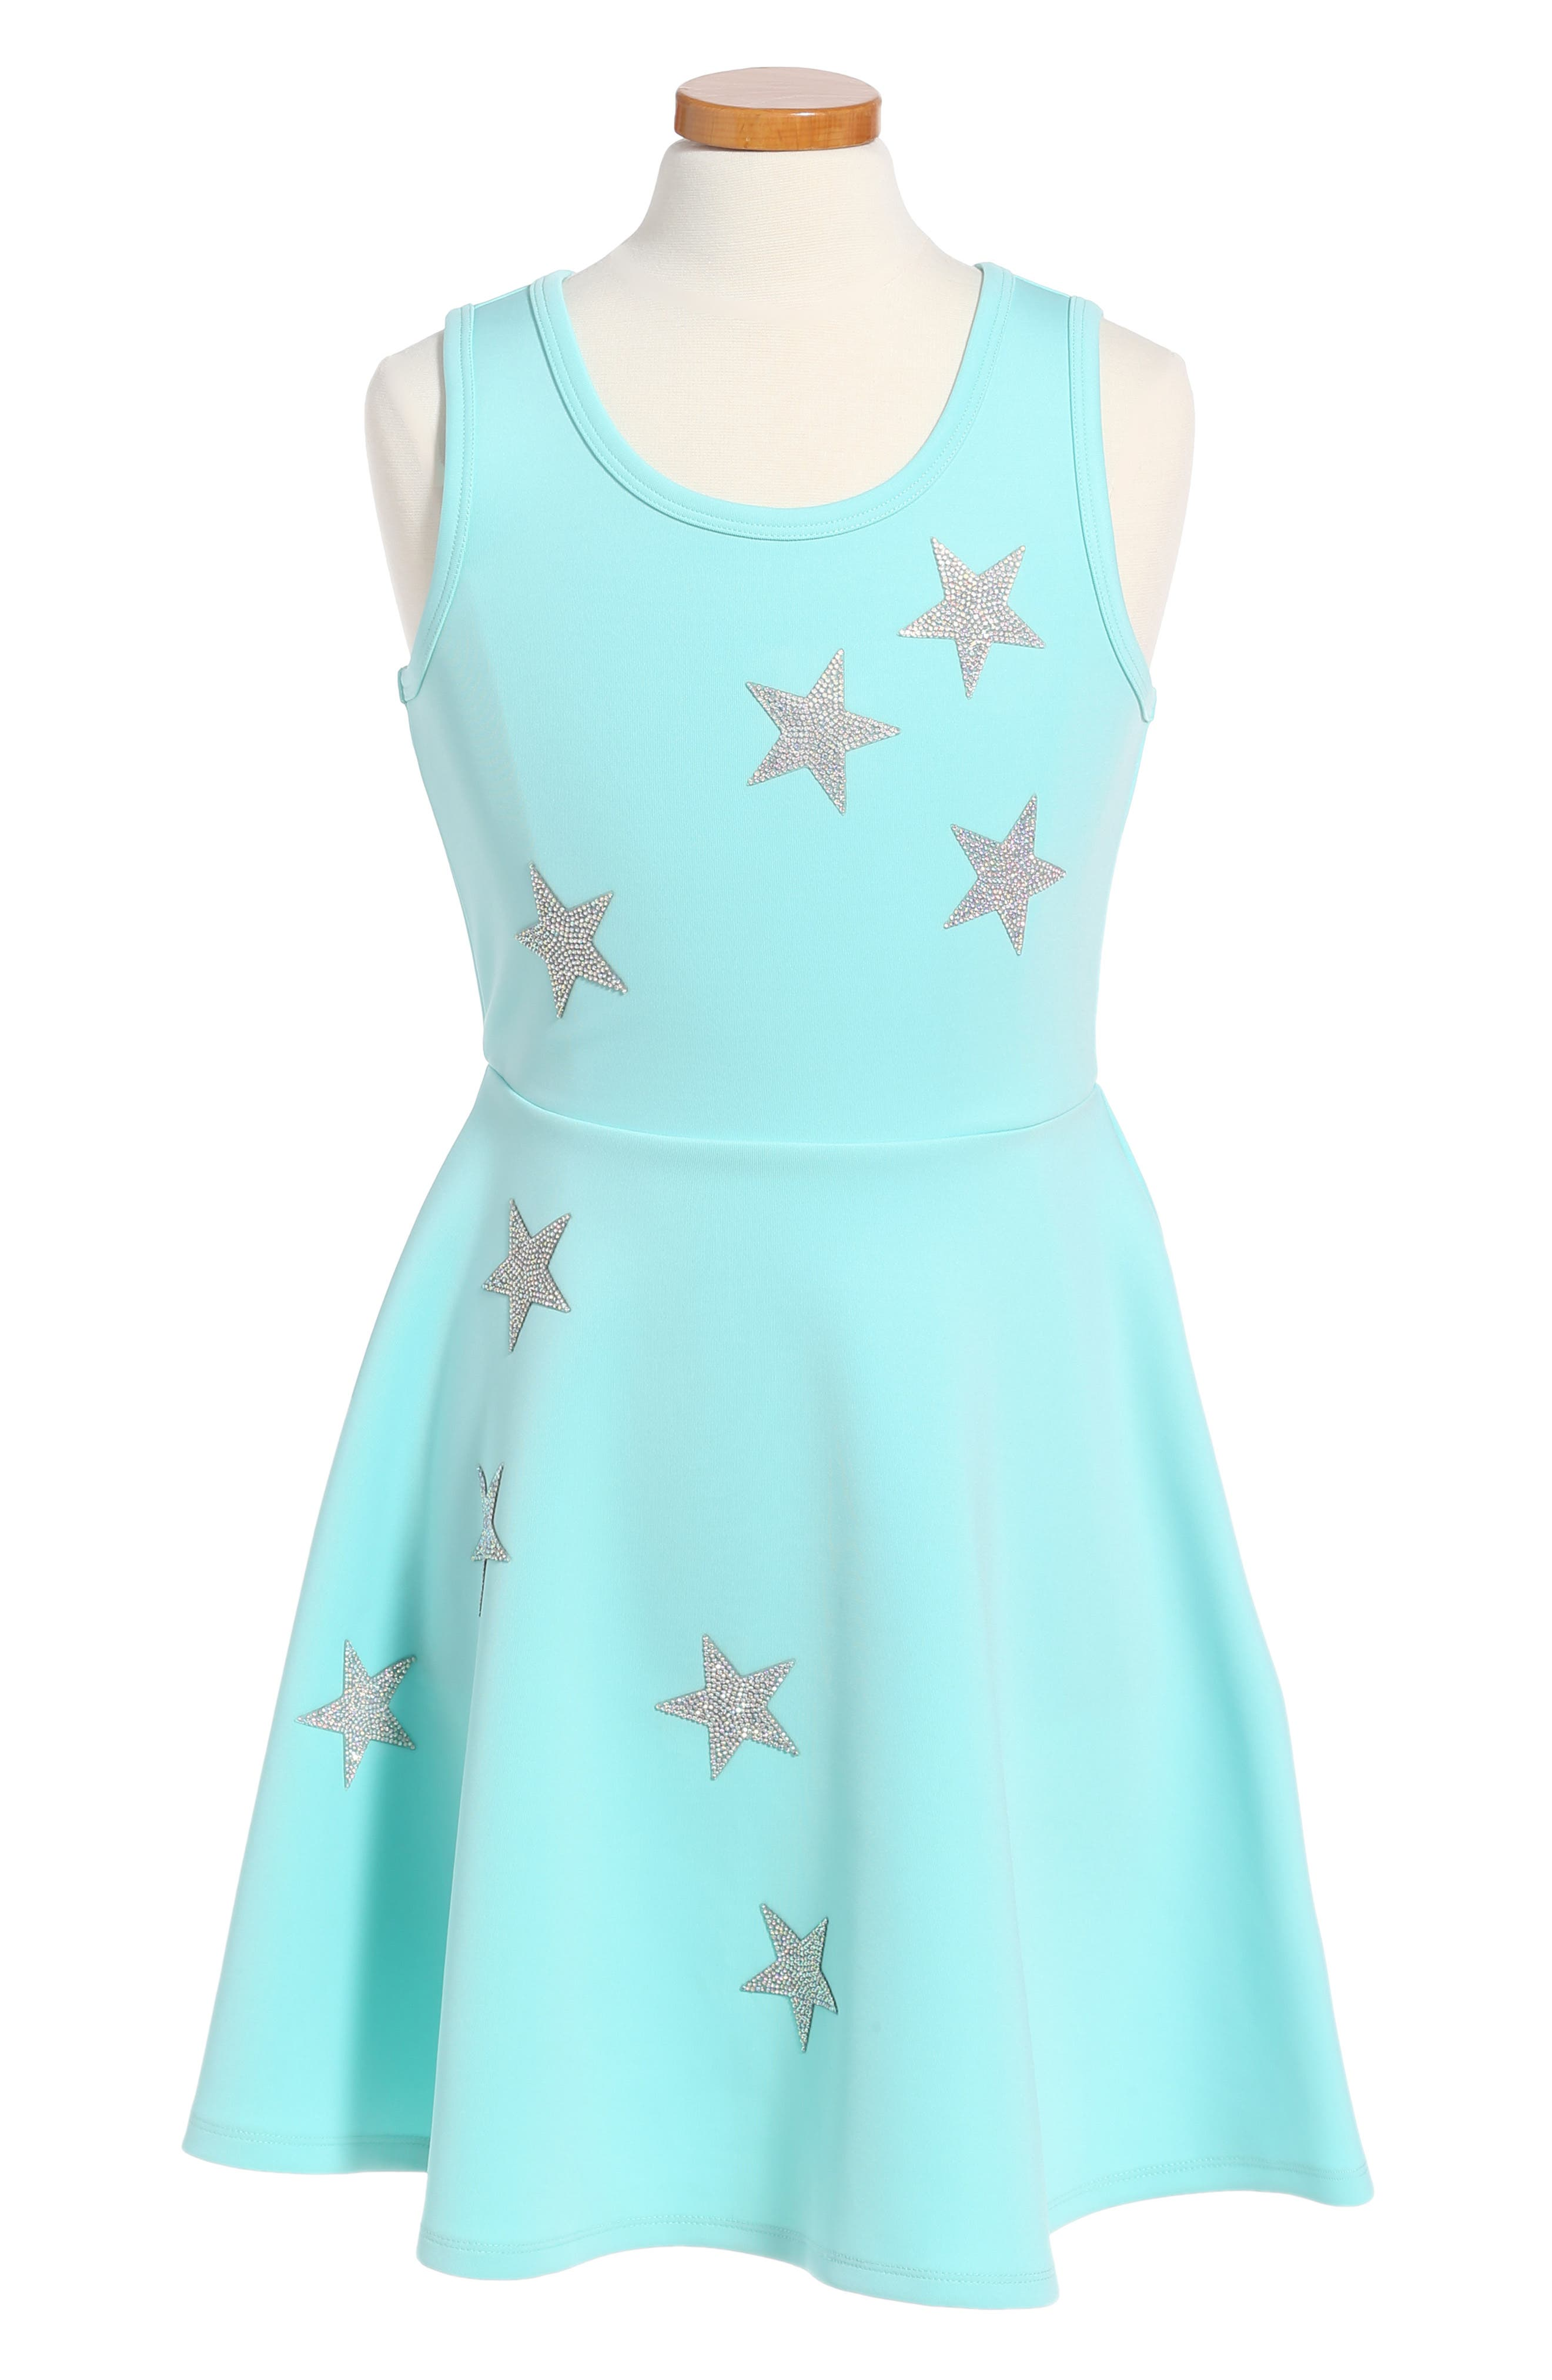 Main Image - Hannah Banana Star Appliqué Skater Dress (Big Girls)